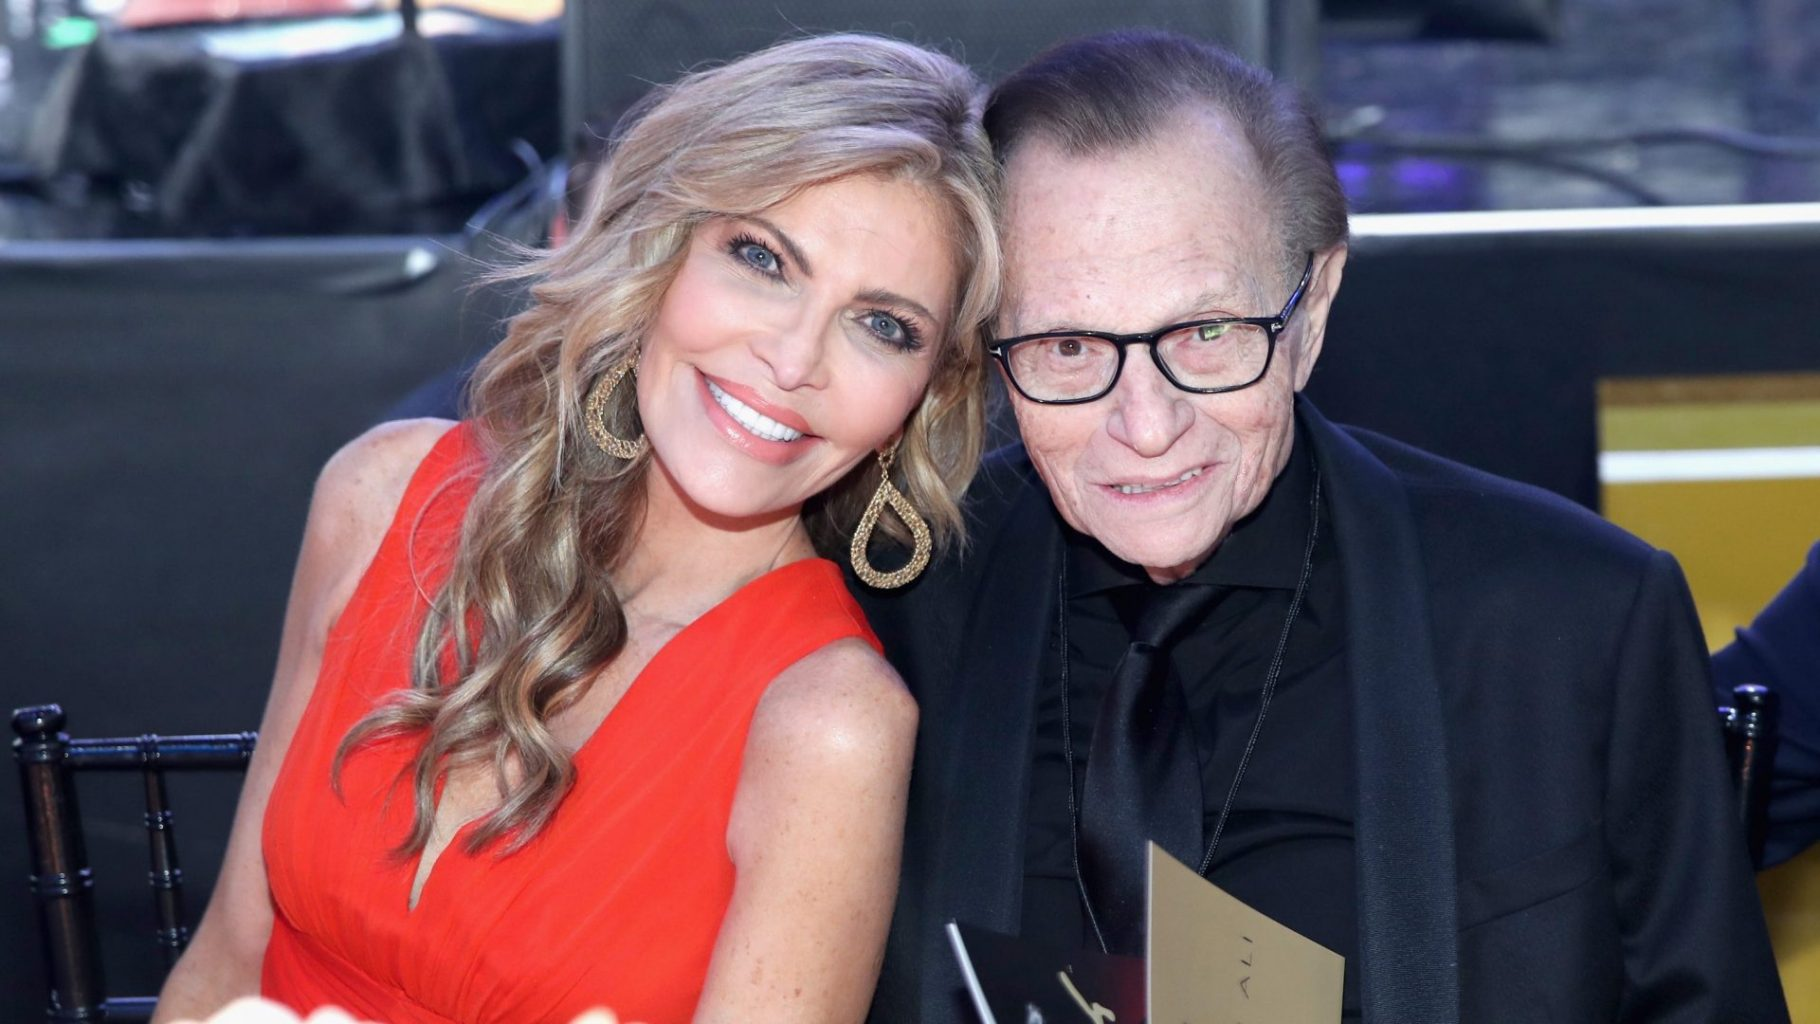 'My Husband Didn't Die Of COVID-19' – Larry King's Estranged Wife Reveals Cause Of Death